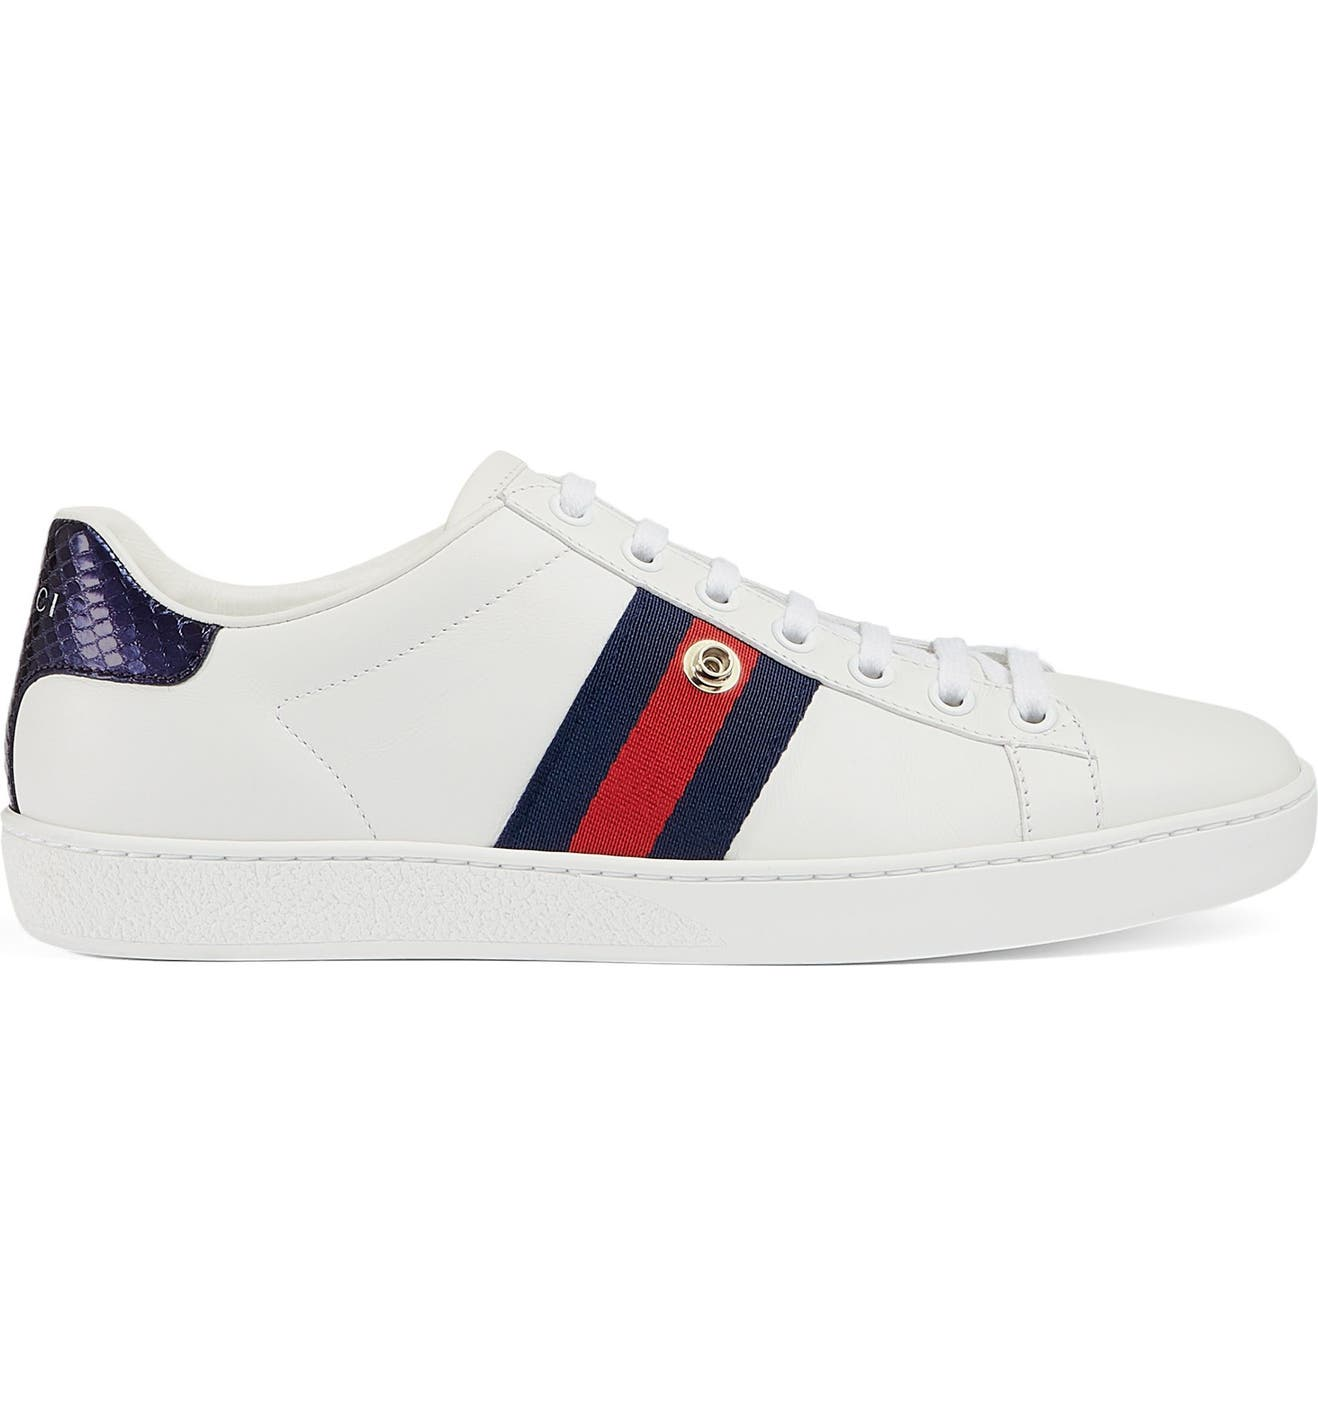 c8a15b999 Gucci New Ace Pineapple Embroidered Patch Low Top Sneaker (Women)    Nordstrom